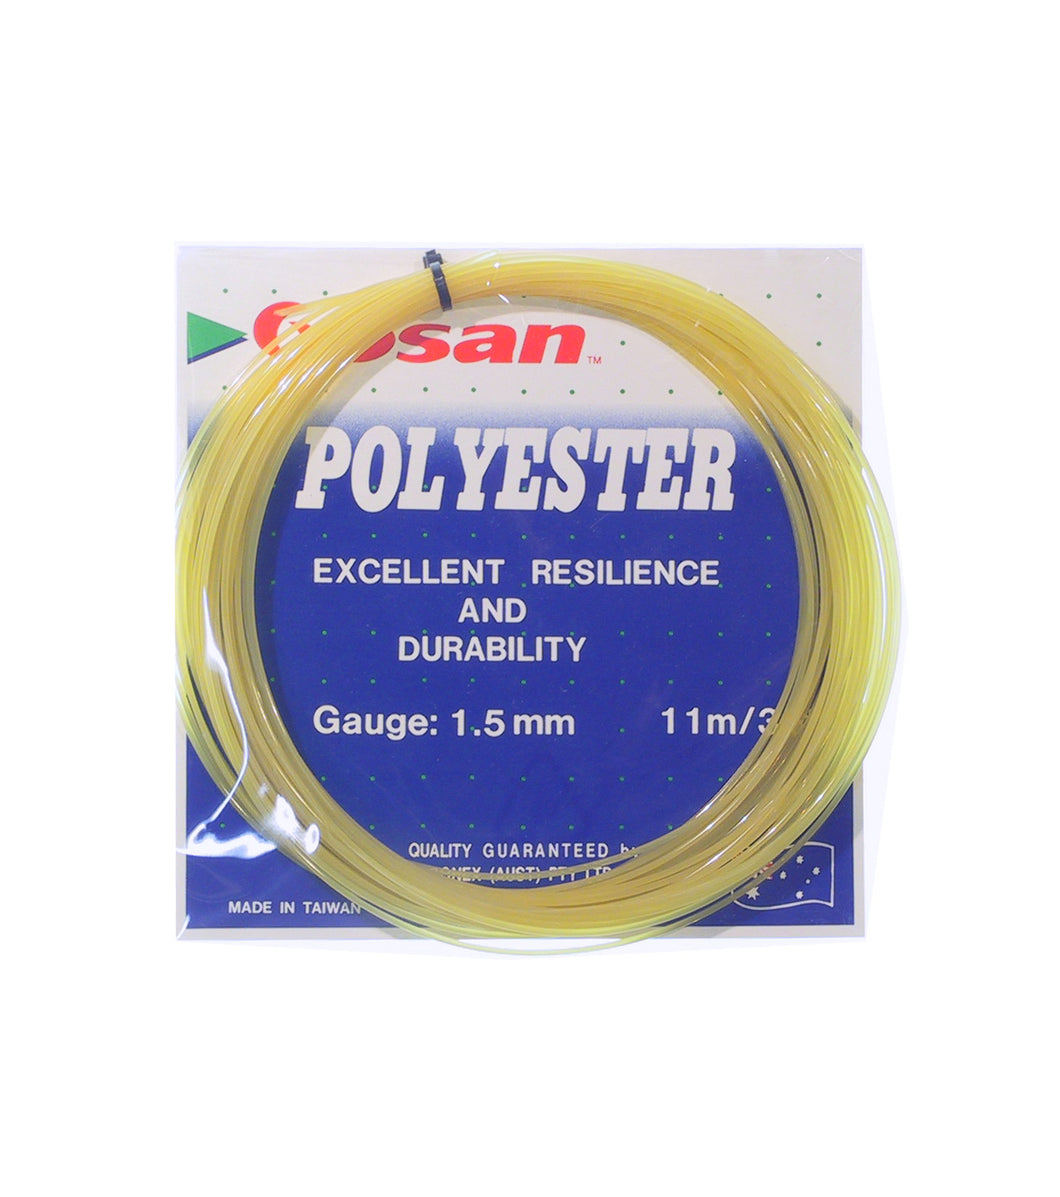 Polyester Gauge 1.5mm String